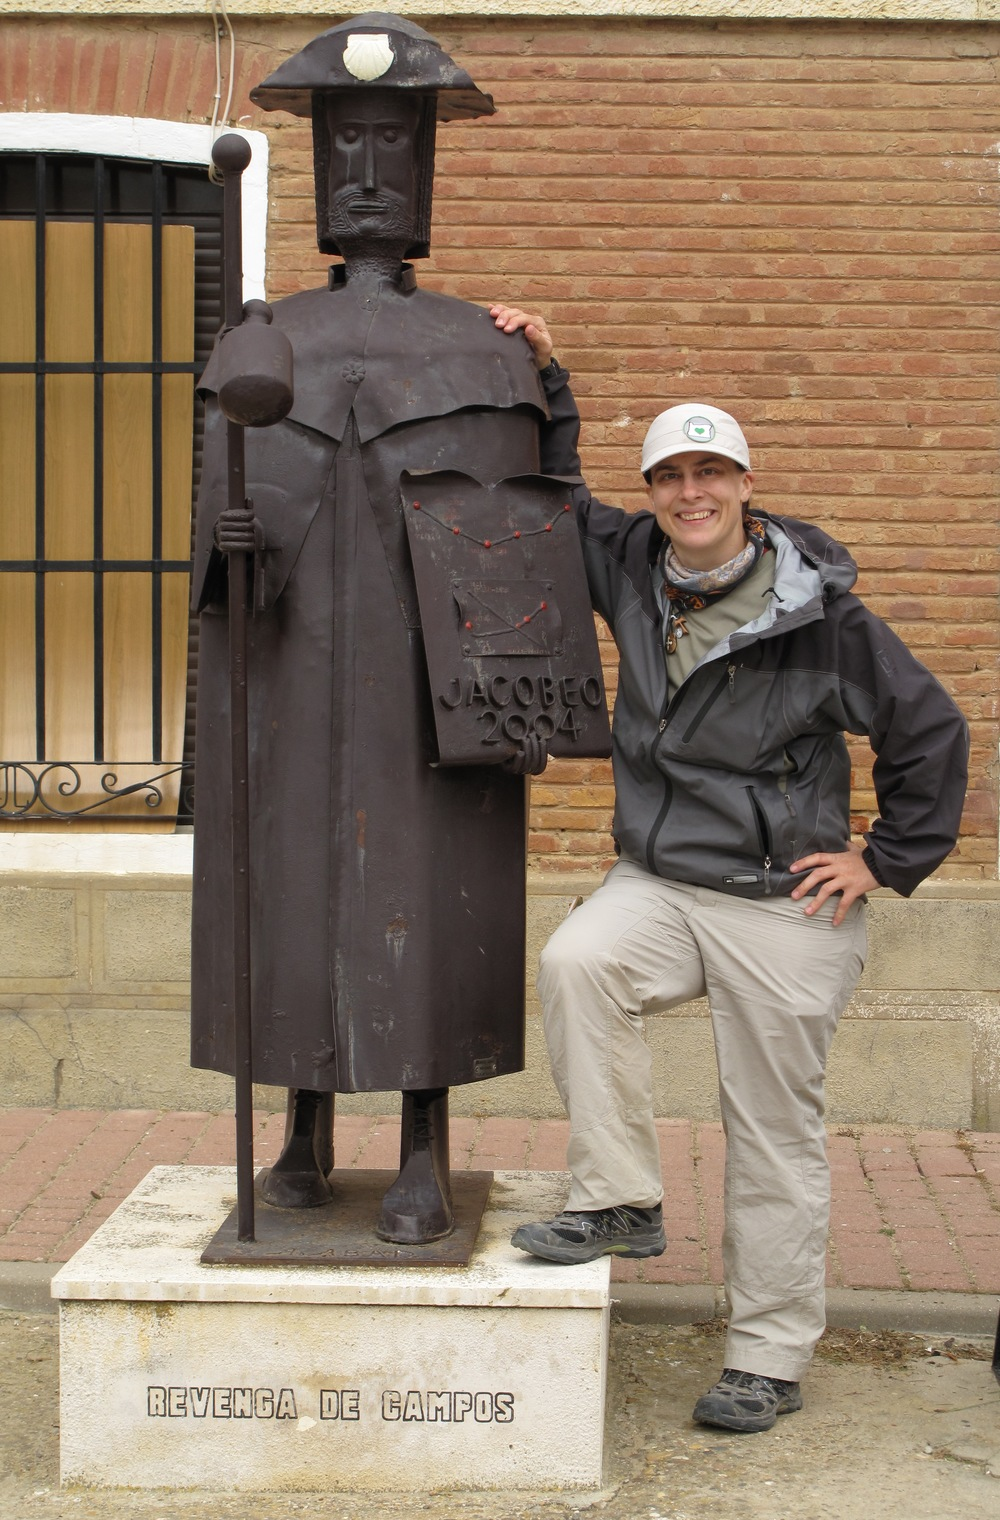 I don't have a ton of pictures with me in them.  This one was taken by in Revenga de Campos.  There are lots of pilgrim statues all along the way.